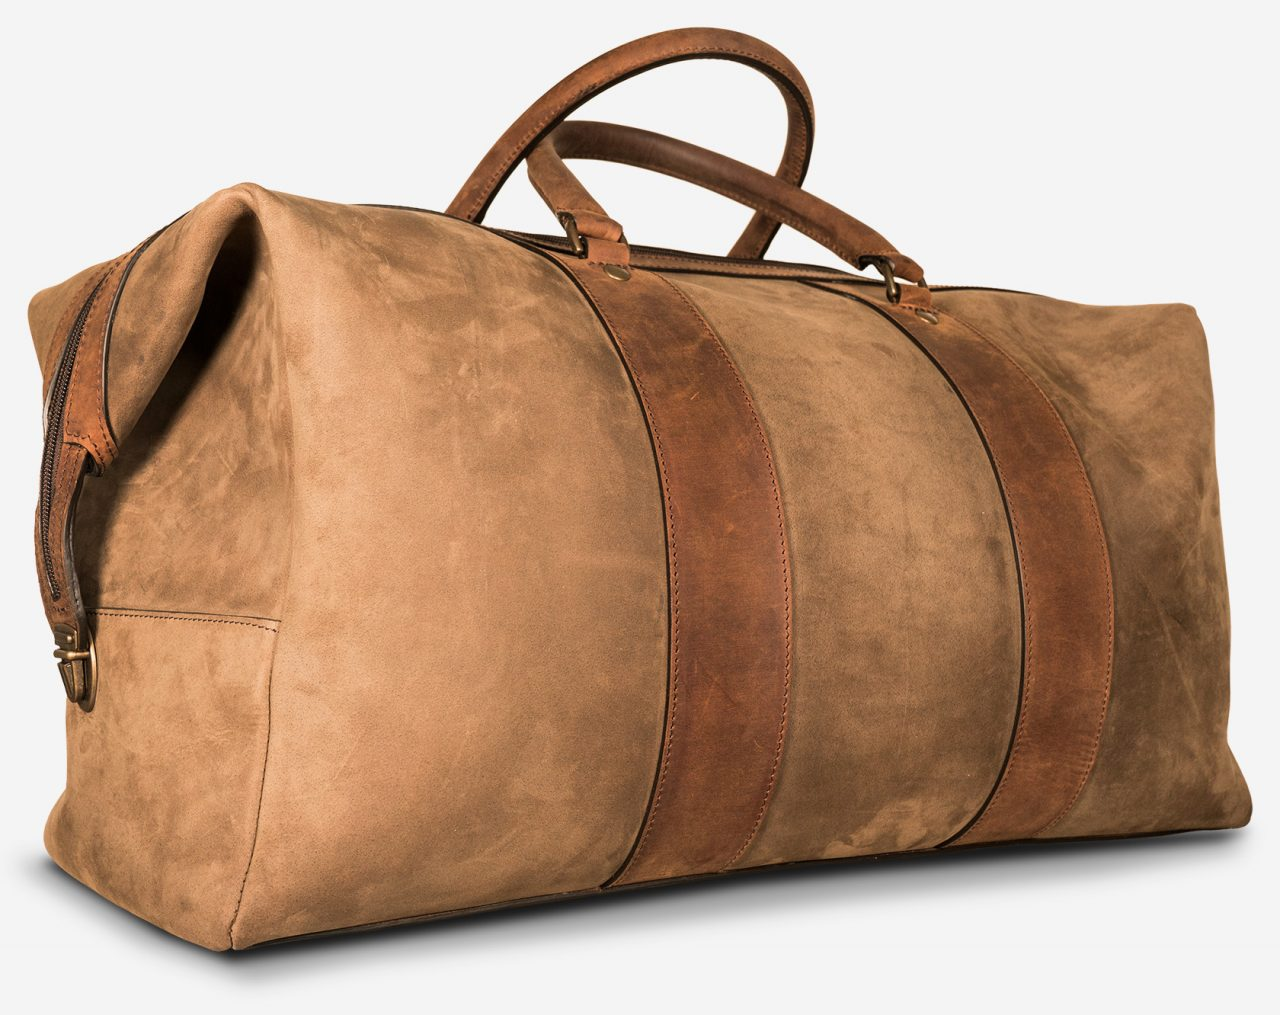 Rear side view of leather duffle bag.